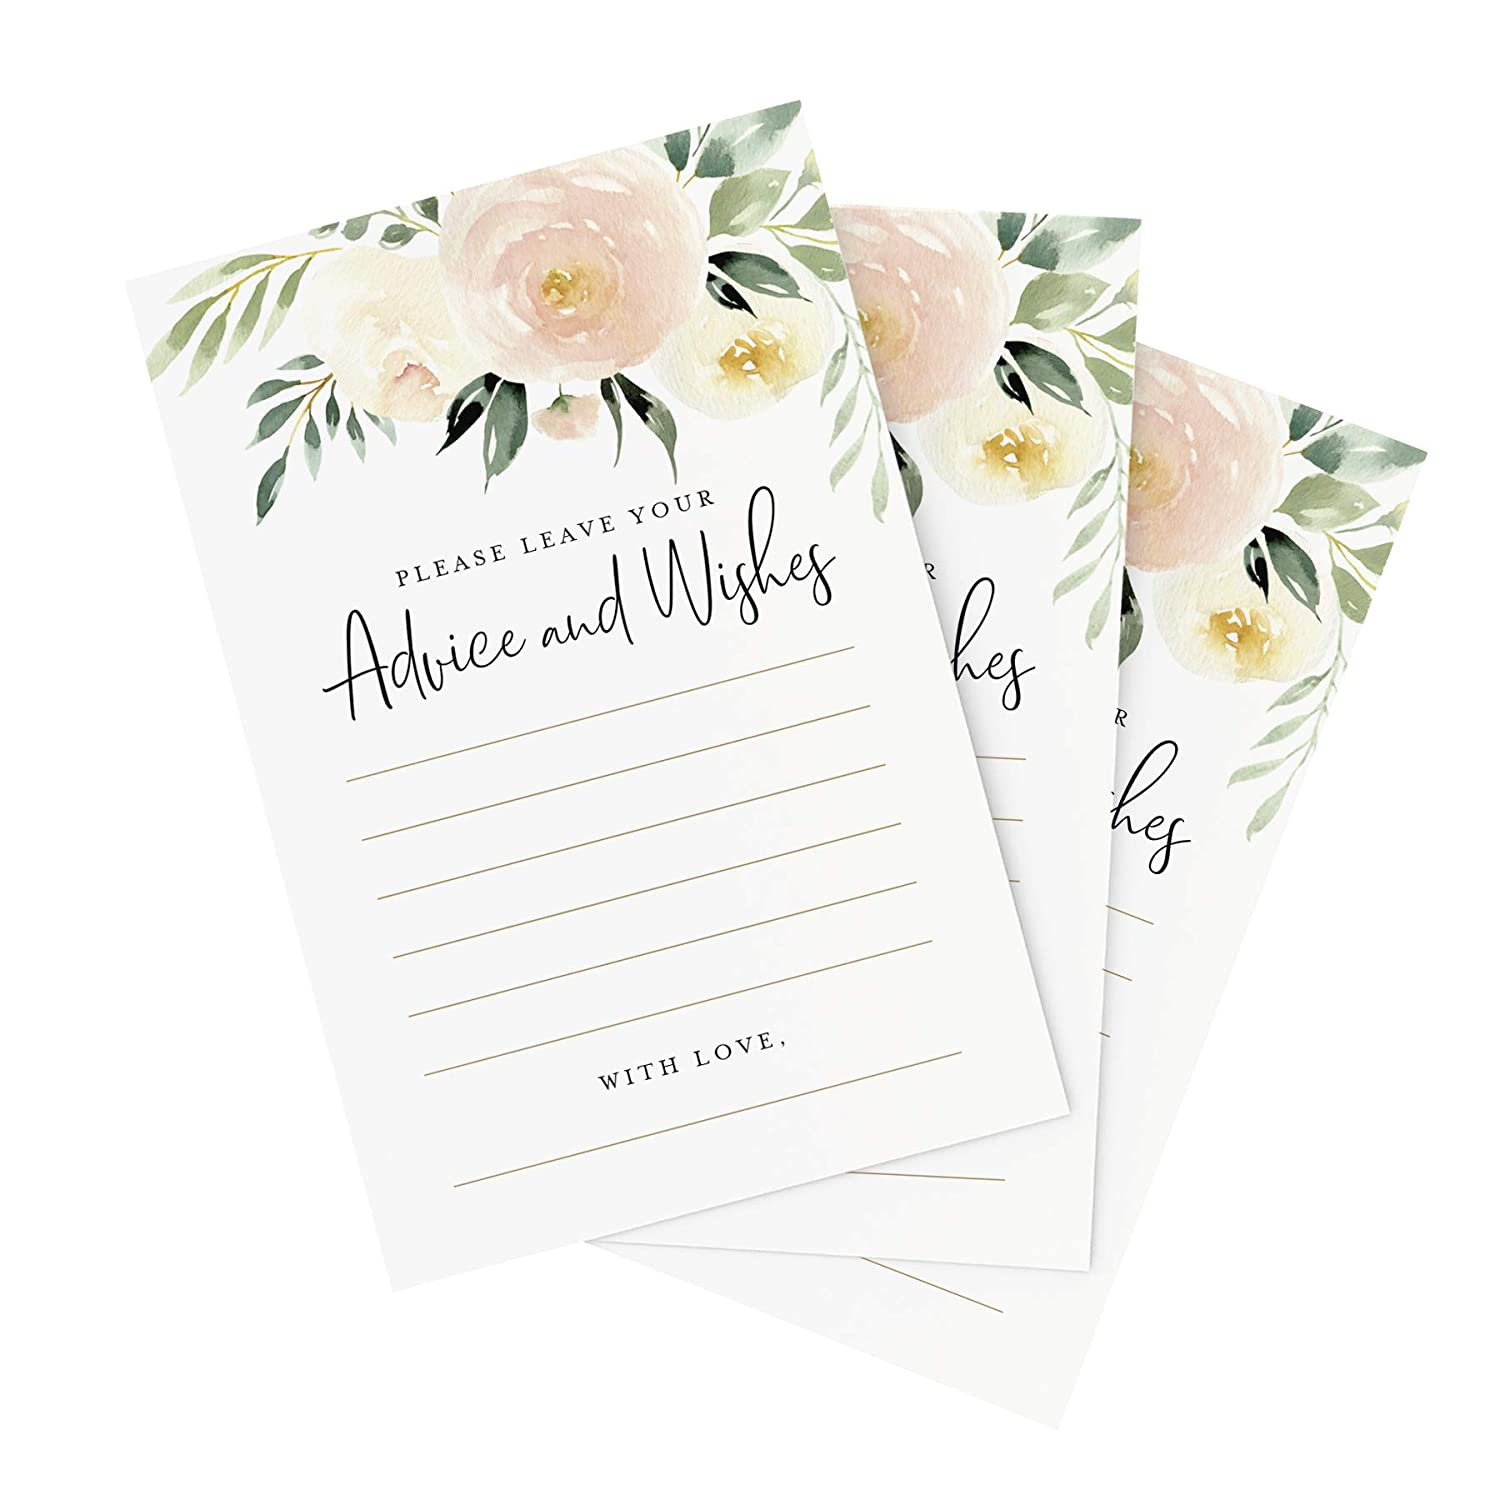 Perfect for: Bridal Shower Pack of 50 Baby Shower Graduation Bliss Paper Boutique Blush Floral Advice and Wishes Cards for The Bride and Groom Wedding 4x6 Cards